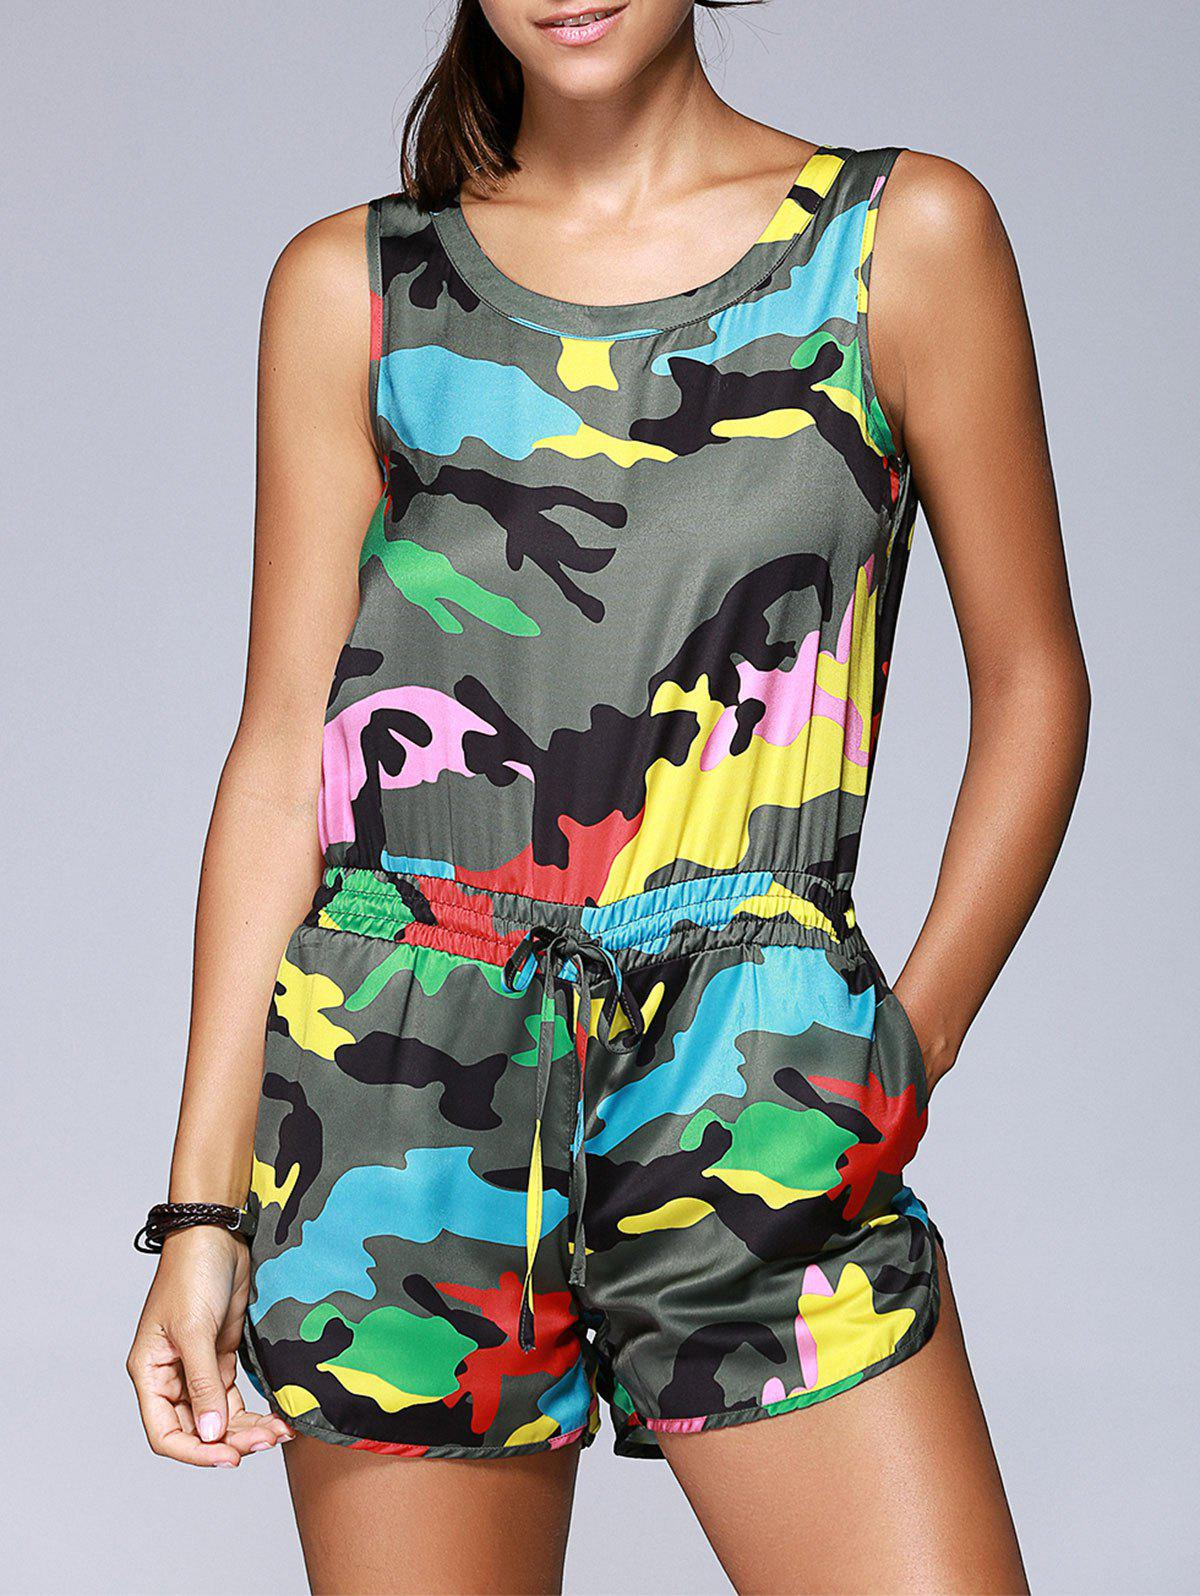 Fashionable Women's Camouflage Printing Sleeveless Drawstring Romper - COLORMIX ONE SIZE(FIT SIZE XS TO M)